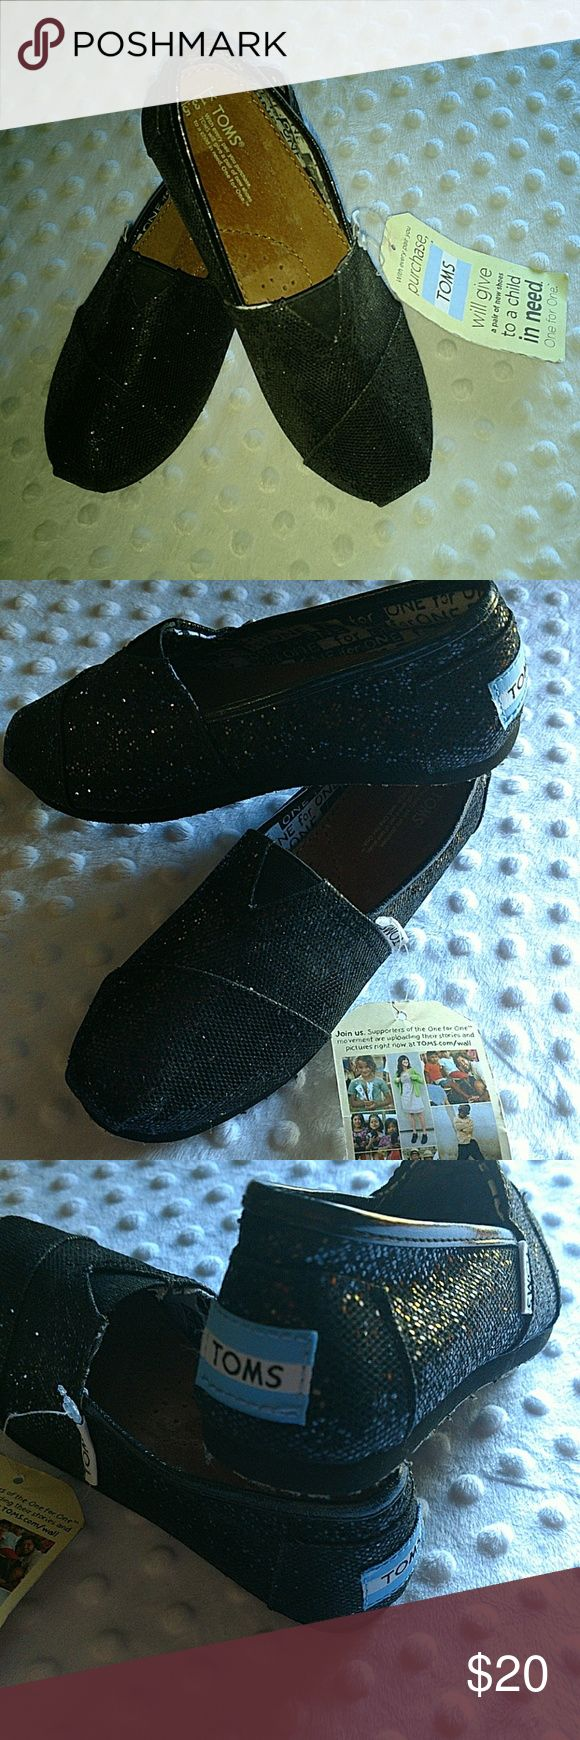 NWT Girl's Black Glitter Tom's size 13.5 NWT great deal Tom's Shoes